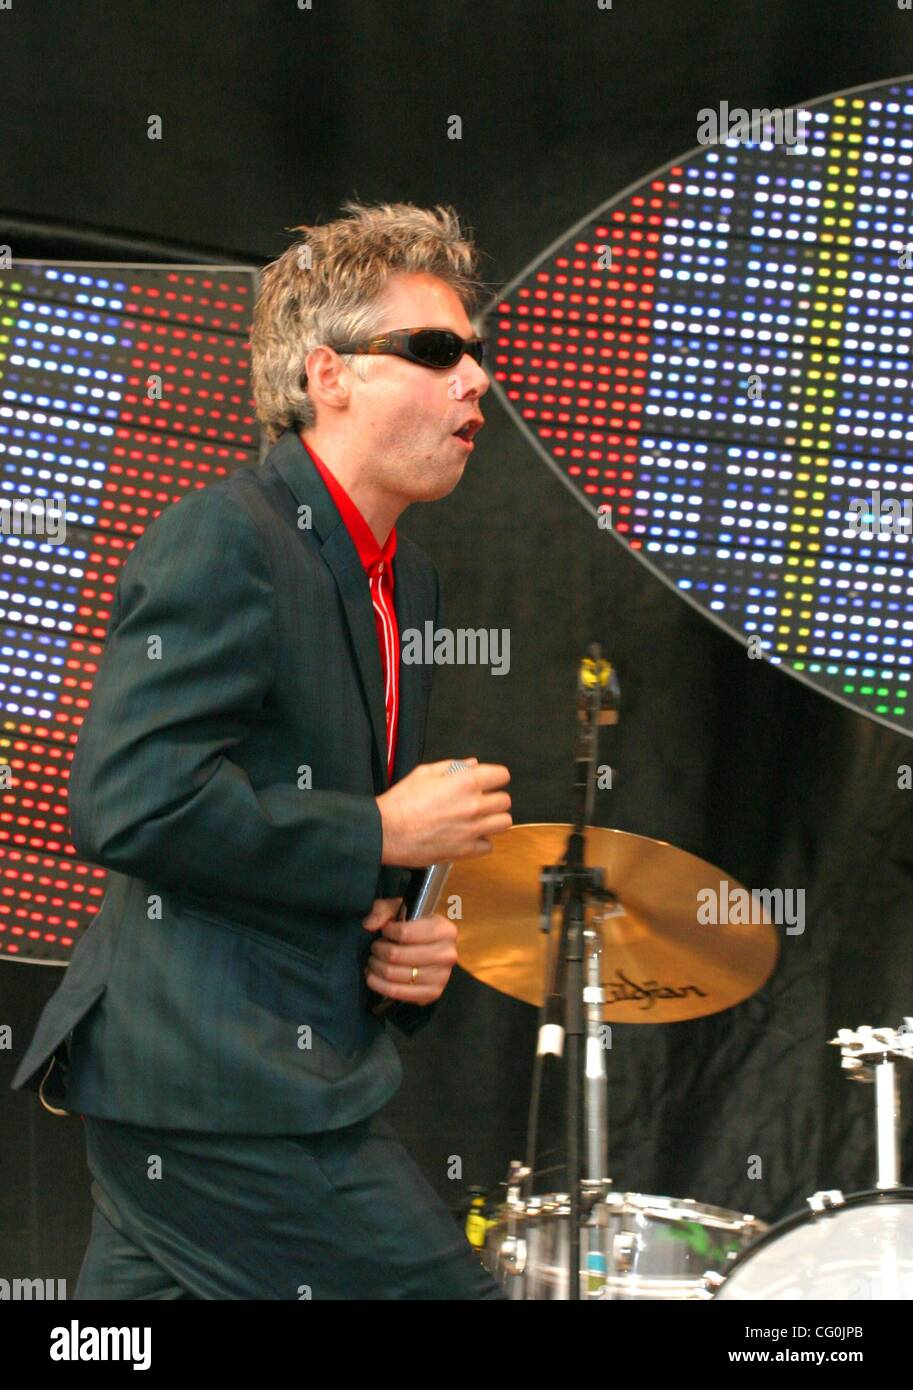 Jul 04, 2007 - Stockholm, SWEDEN - ADAM YAUCH (MCA) as musicians the 'Beastie Boys' perform live in concert at Grona Stock Photo